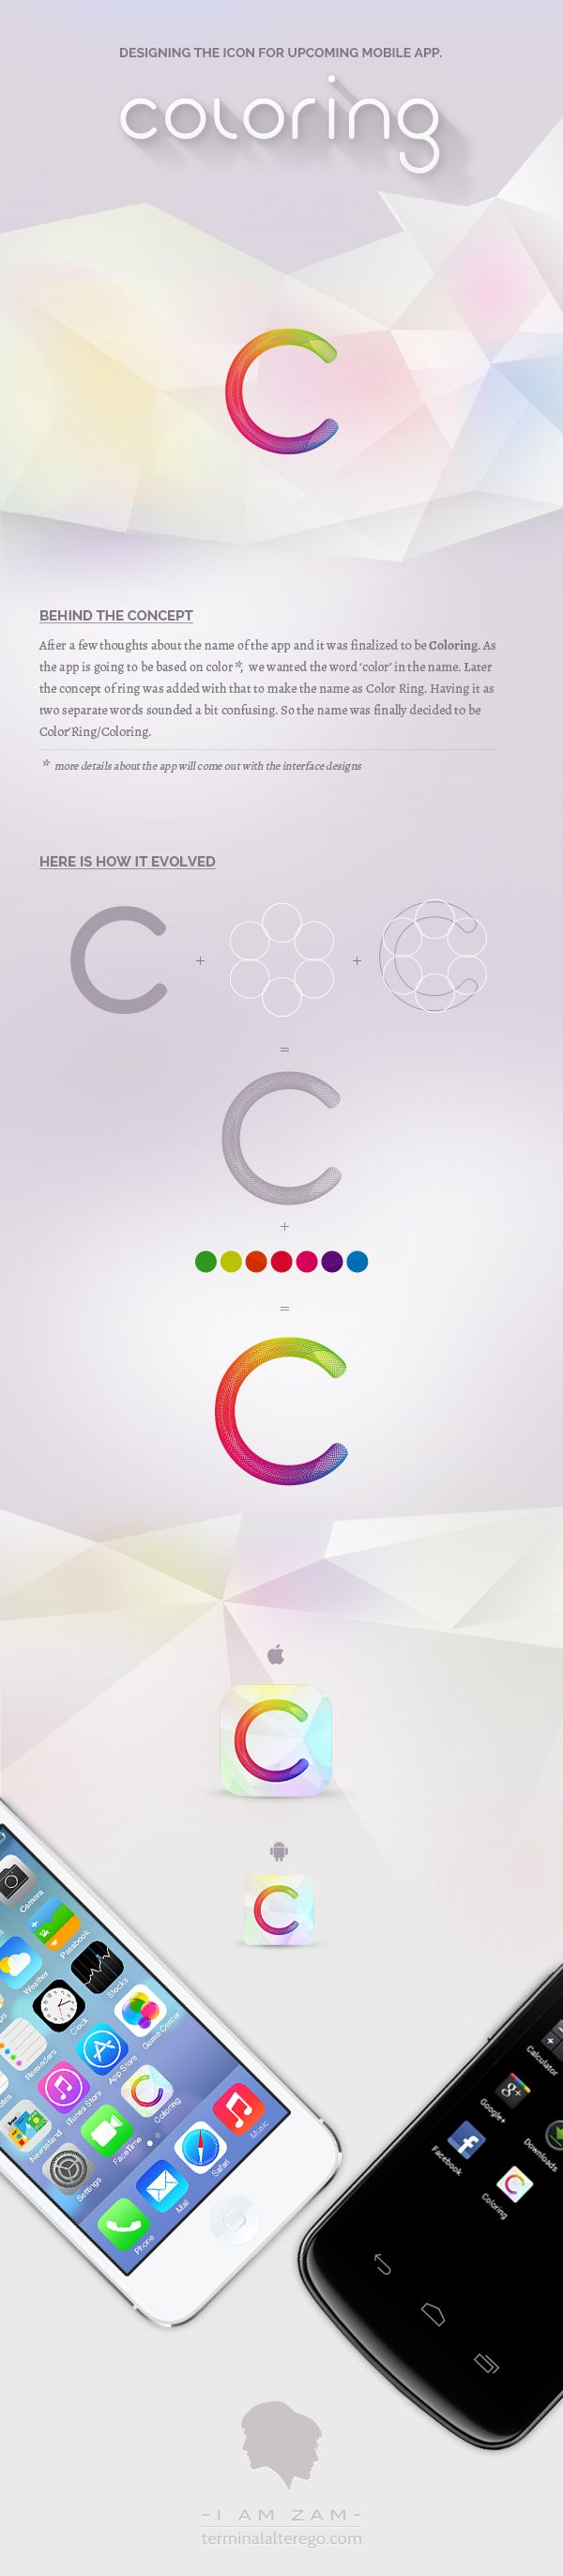 """""""Coloring - iPhone & Android App Icon"""", a project on @Behance ::  http://www.behance.net/gallery/Coloring-iPhone-Android-App-Icon/10422455"""